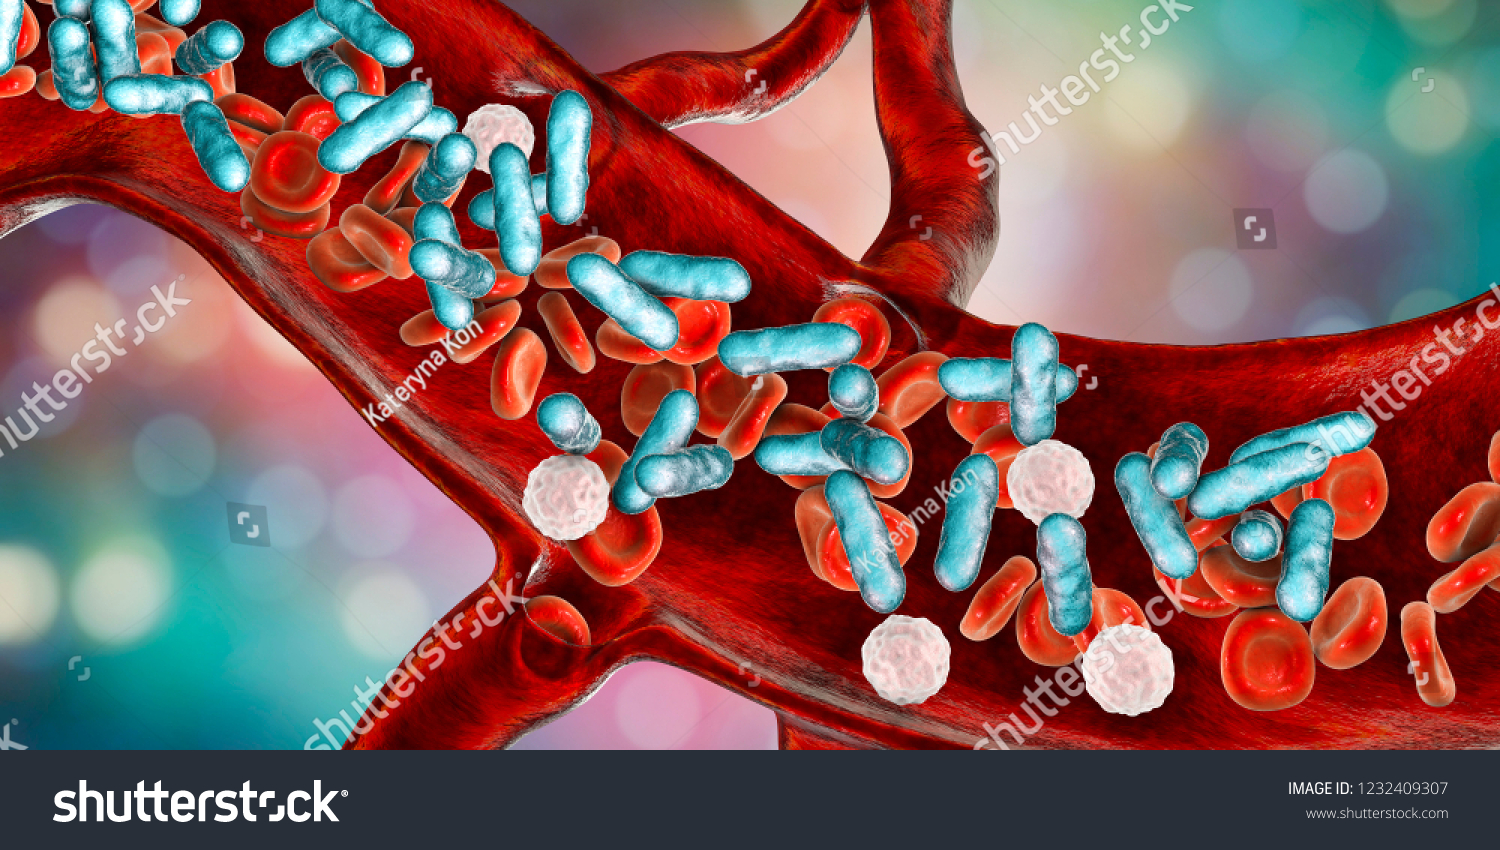 Sepsis, bacteria in blood. 3D illustration showing rod-shaped bacteria with red blood cells and leukocytes